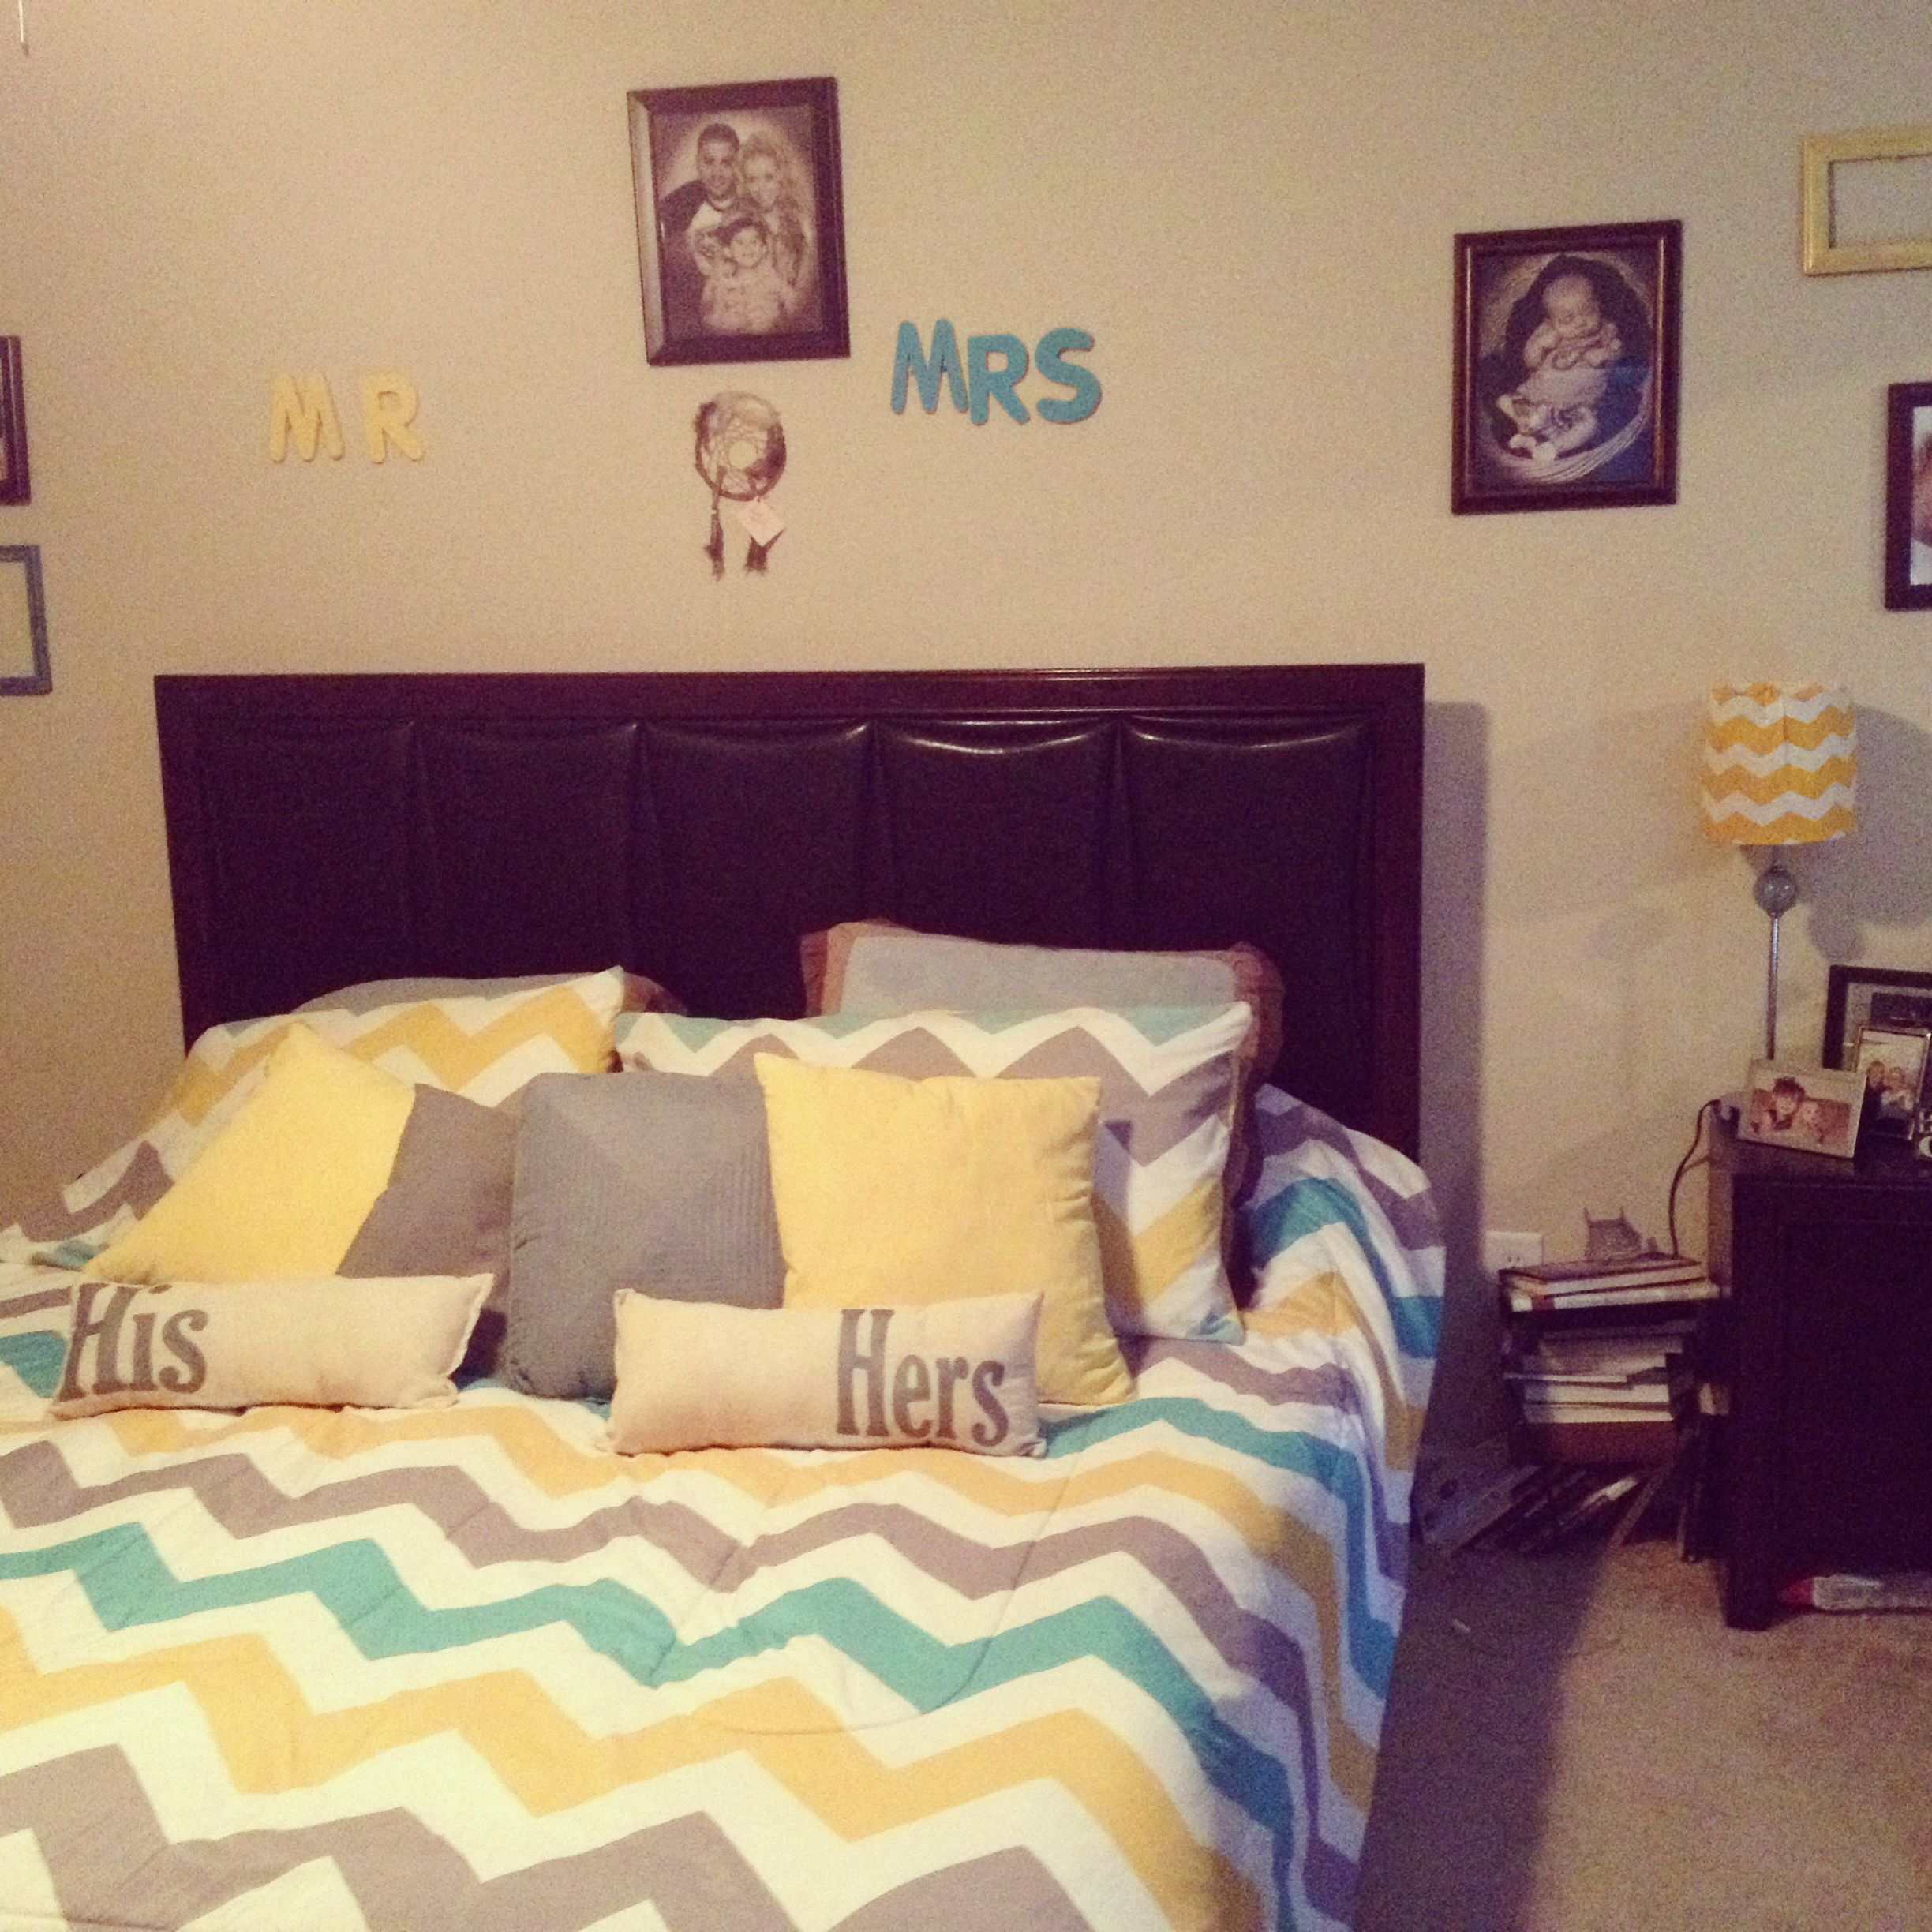 Gray And Teal Bedroom Ideas yellow, gray, teal chevron bedroom. flores house. | new house